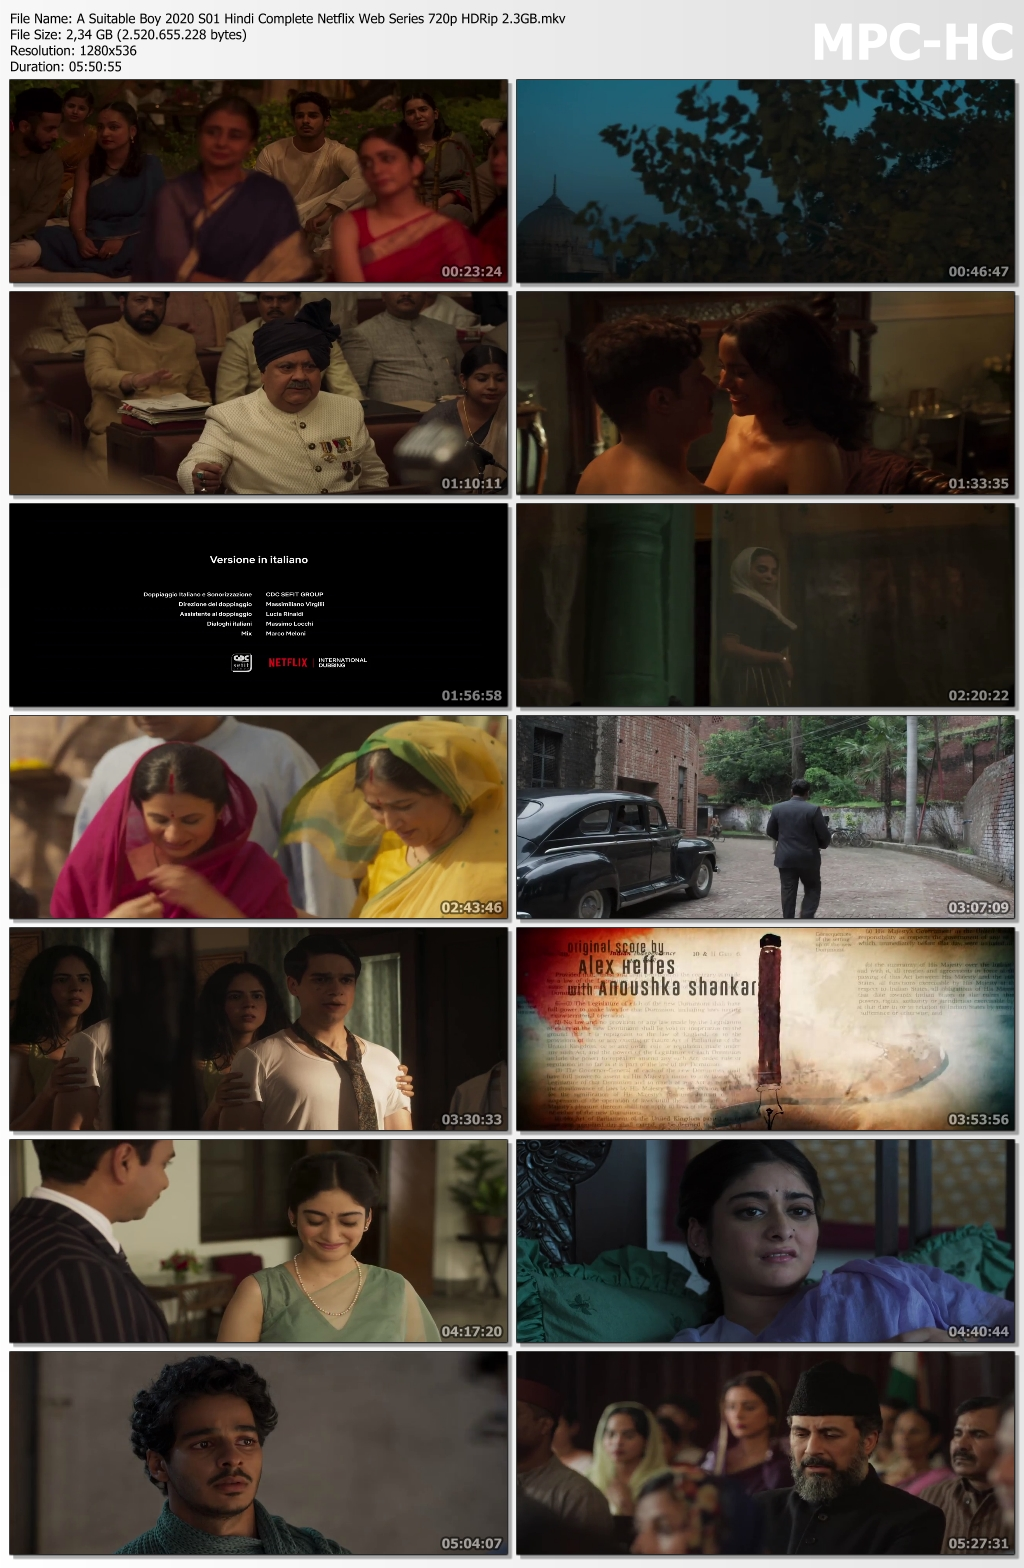 A-Suitable-Boy-2020-S01-Hindi-Complete-Netflix-Web-Series-720p-HDRip-2-3-GB-mkv-thumbs